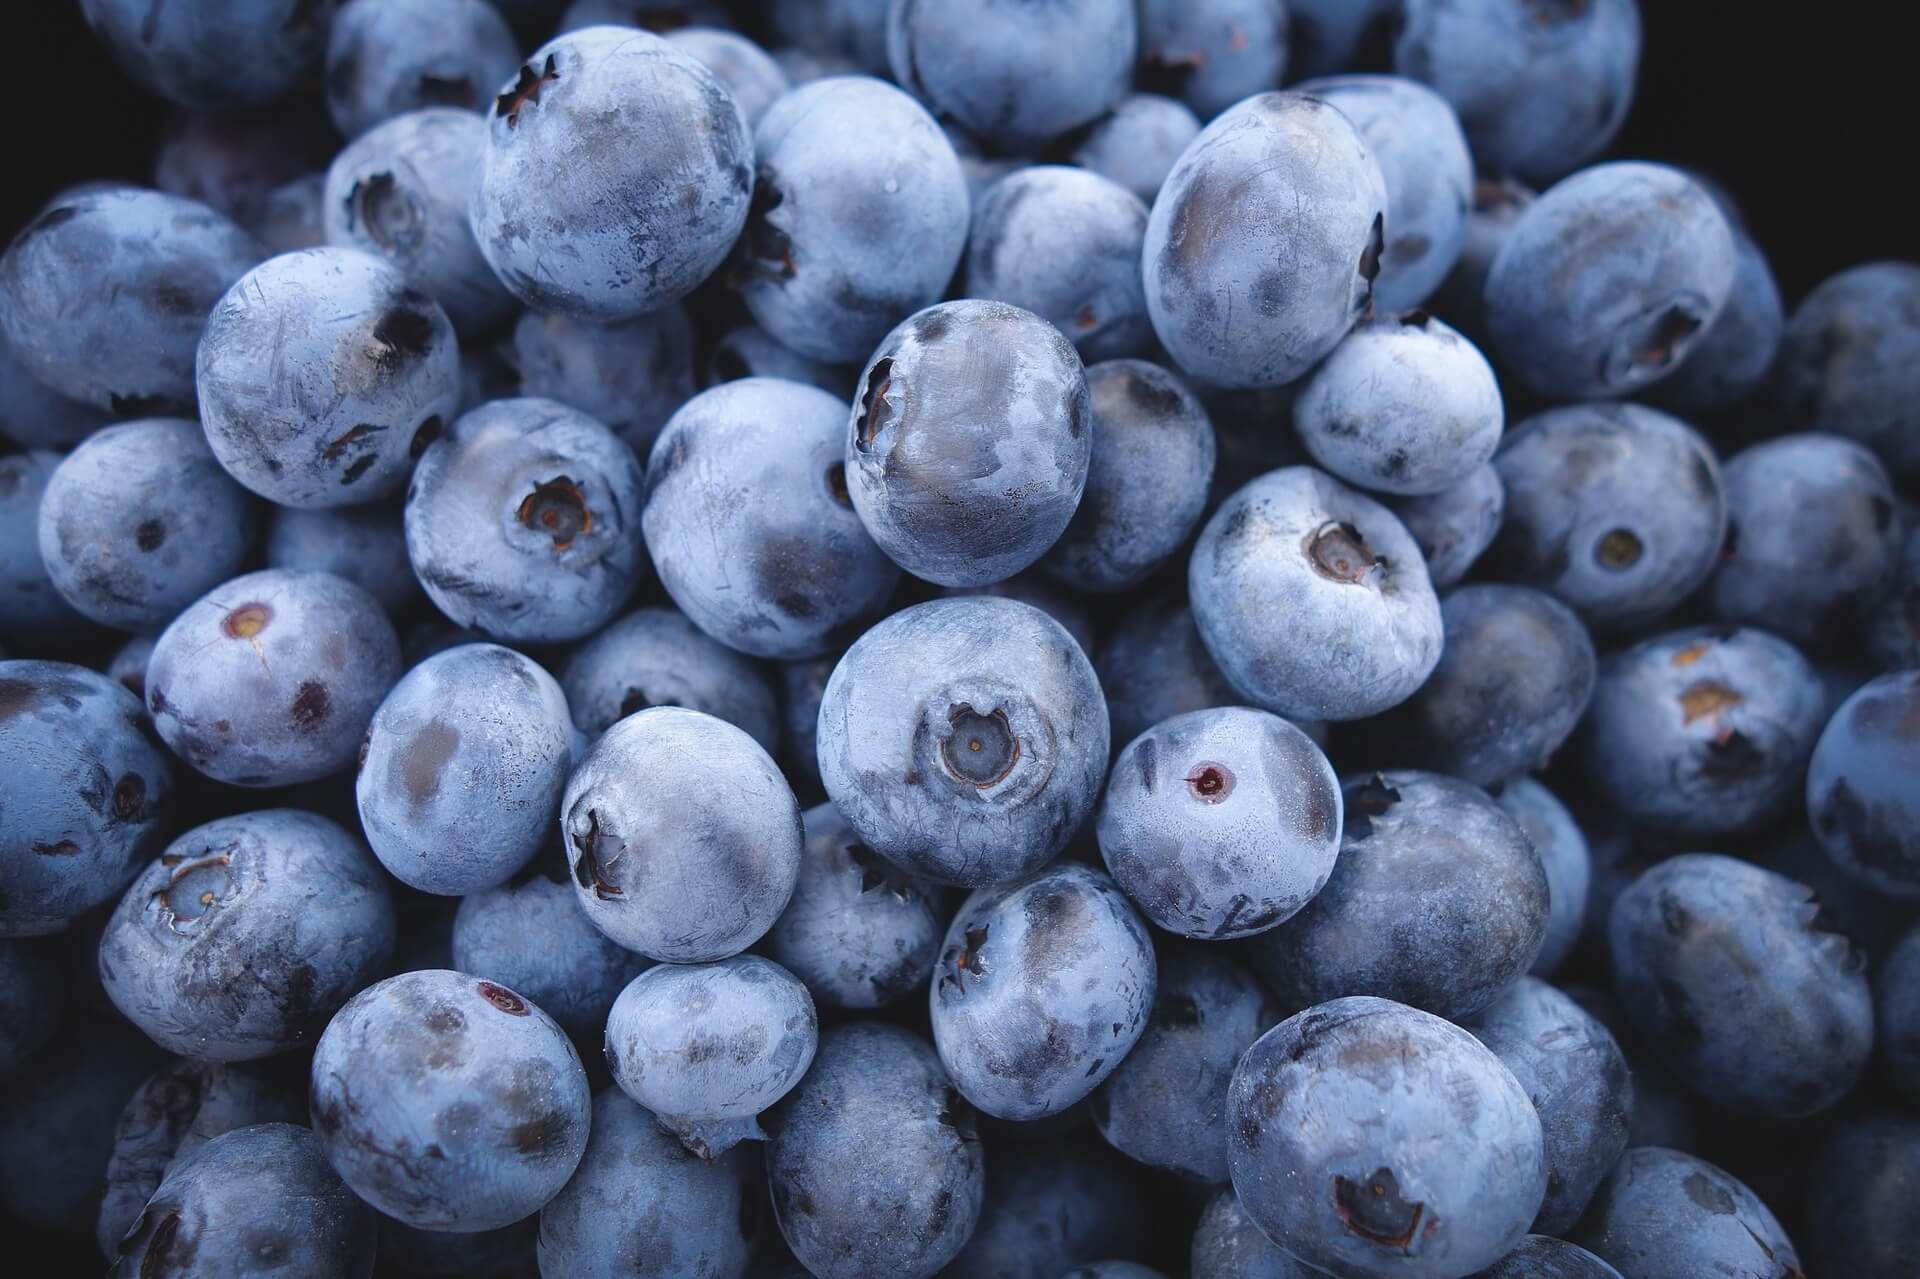 blueberries-690072_1920